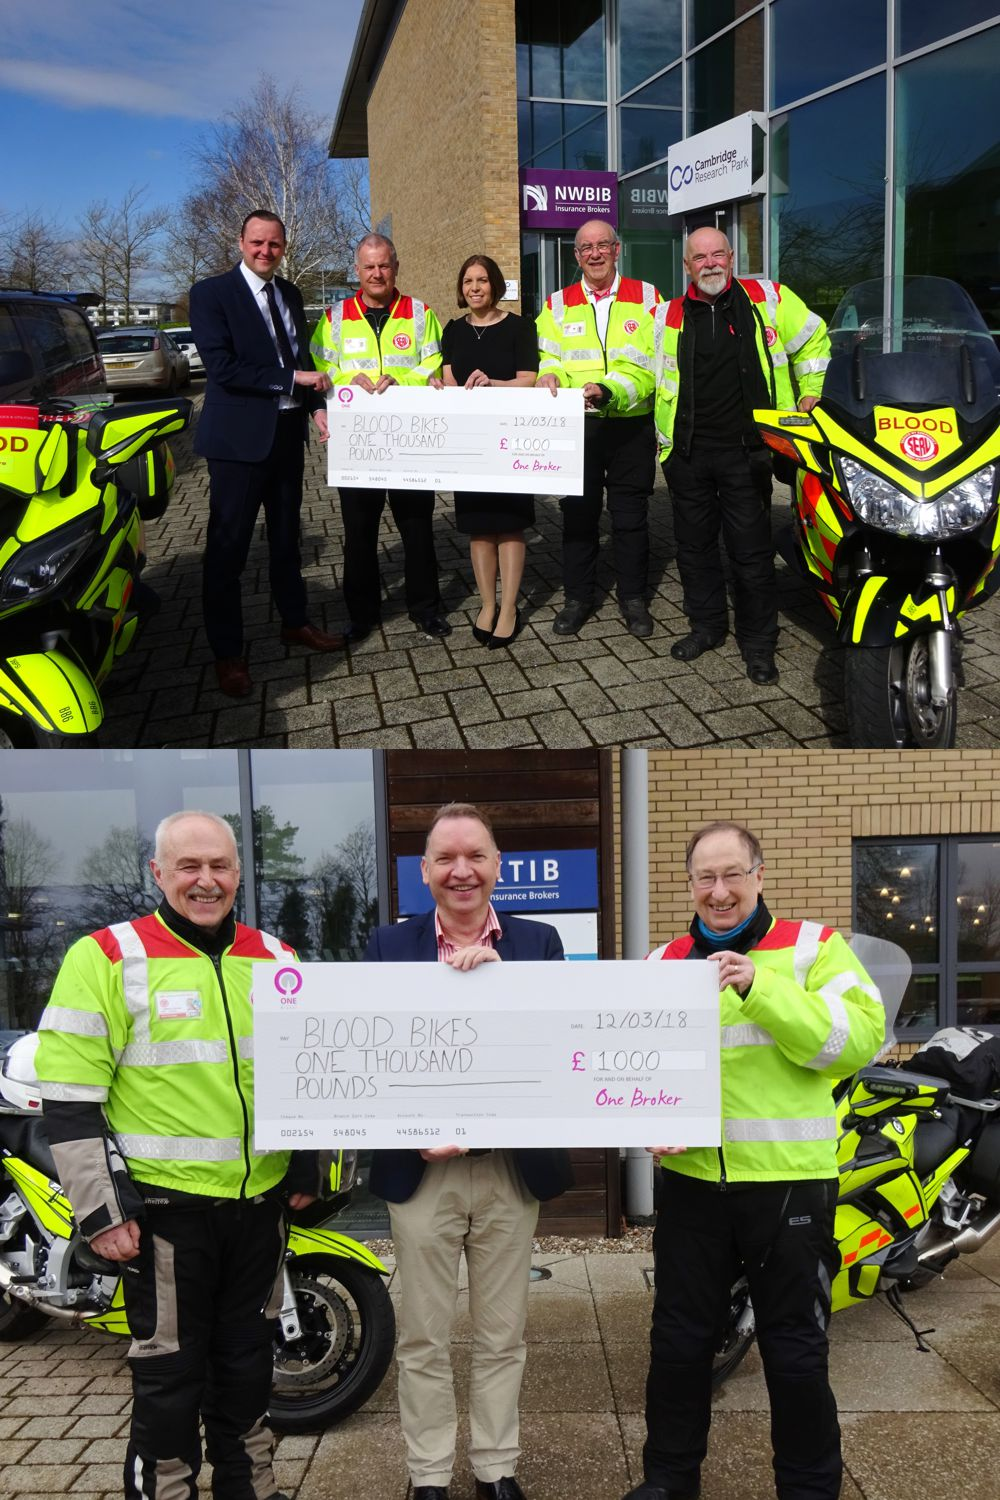 giant charity cheque